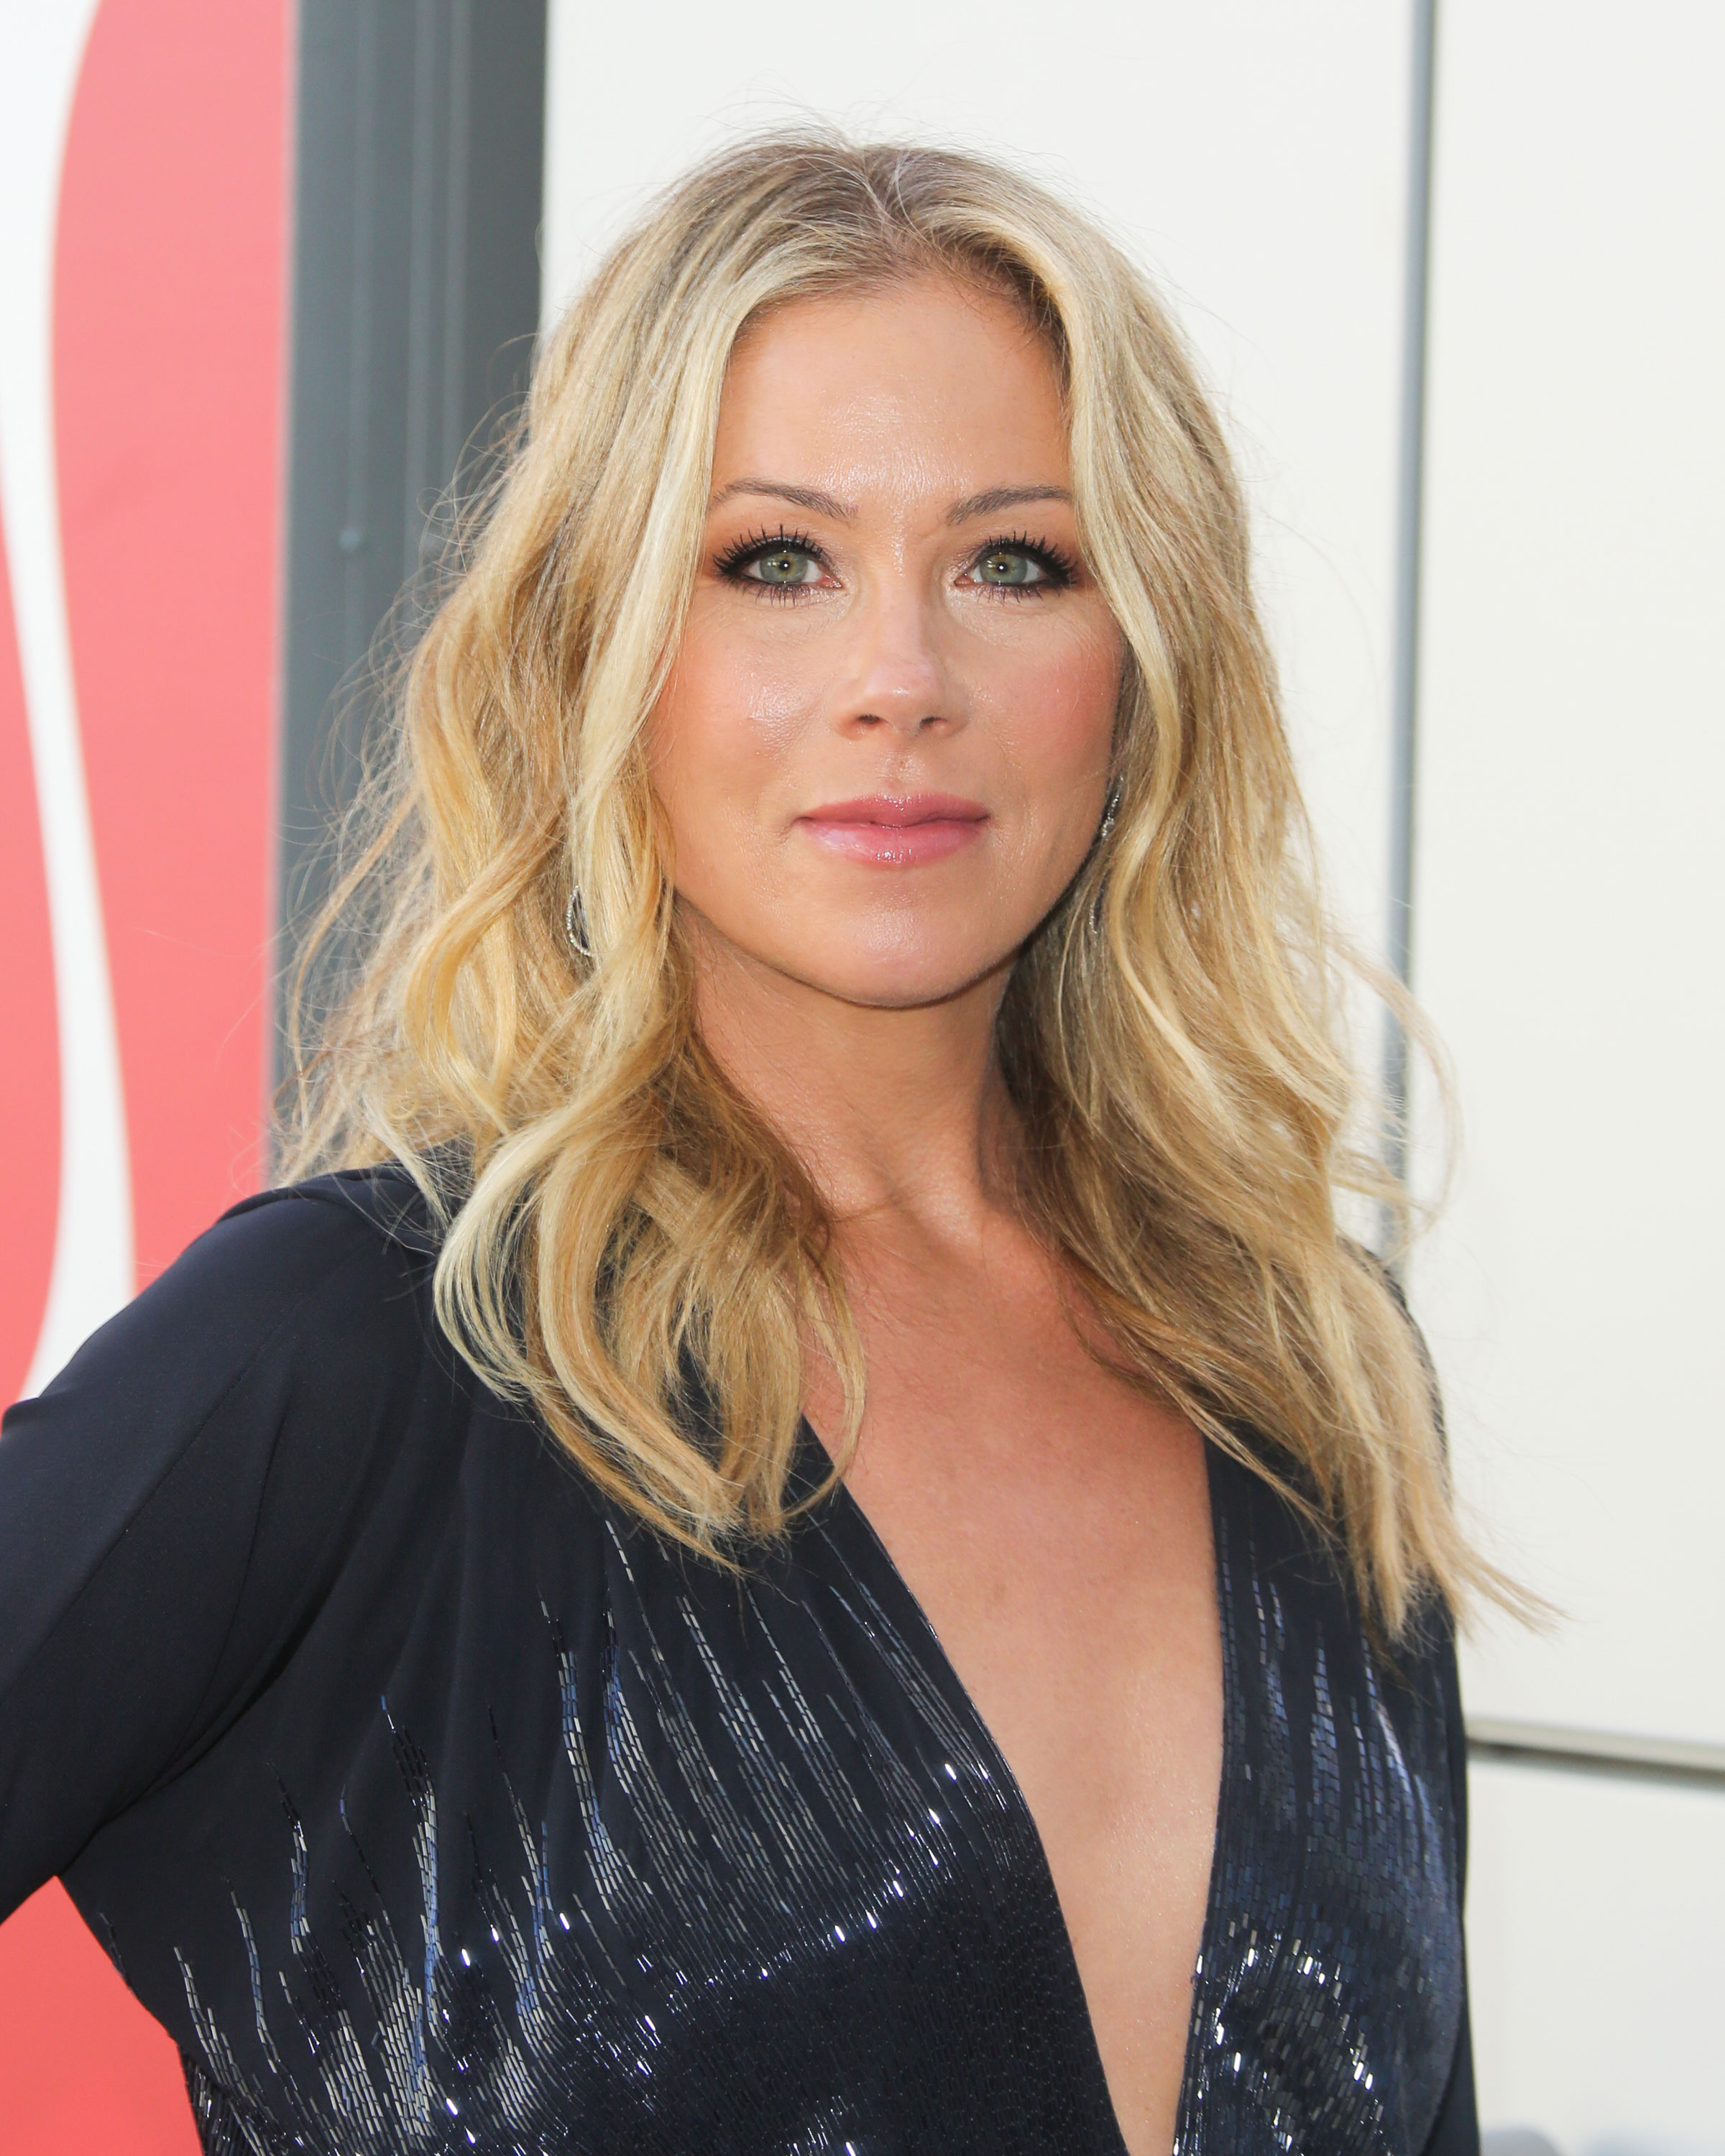 Christina Applegate reveals she's had ovaries, fallopian tubes removed